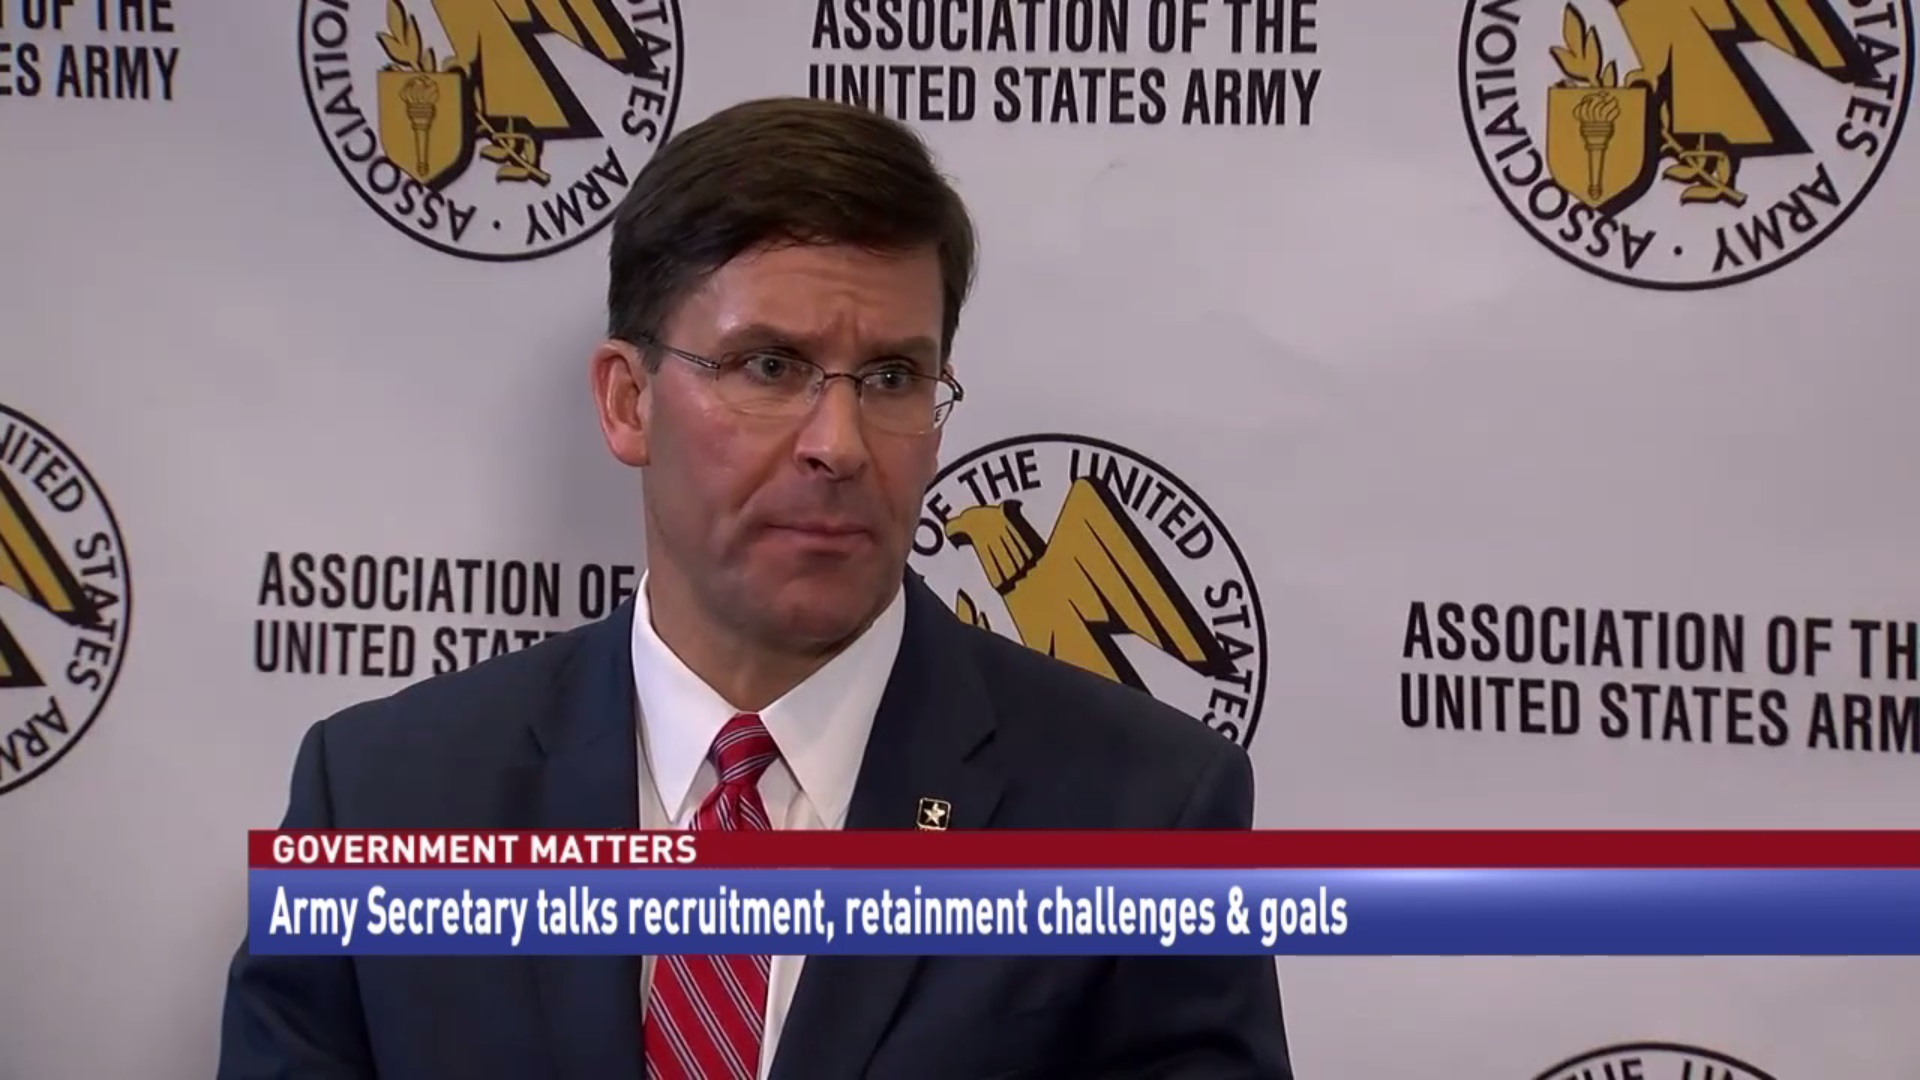 Army Secretary talks recruitment, retainment challenges & goals